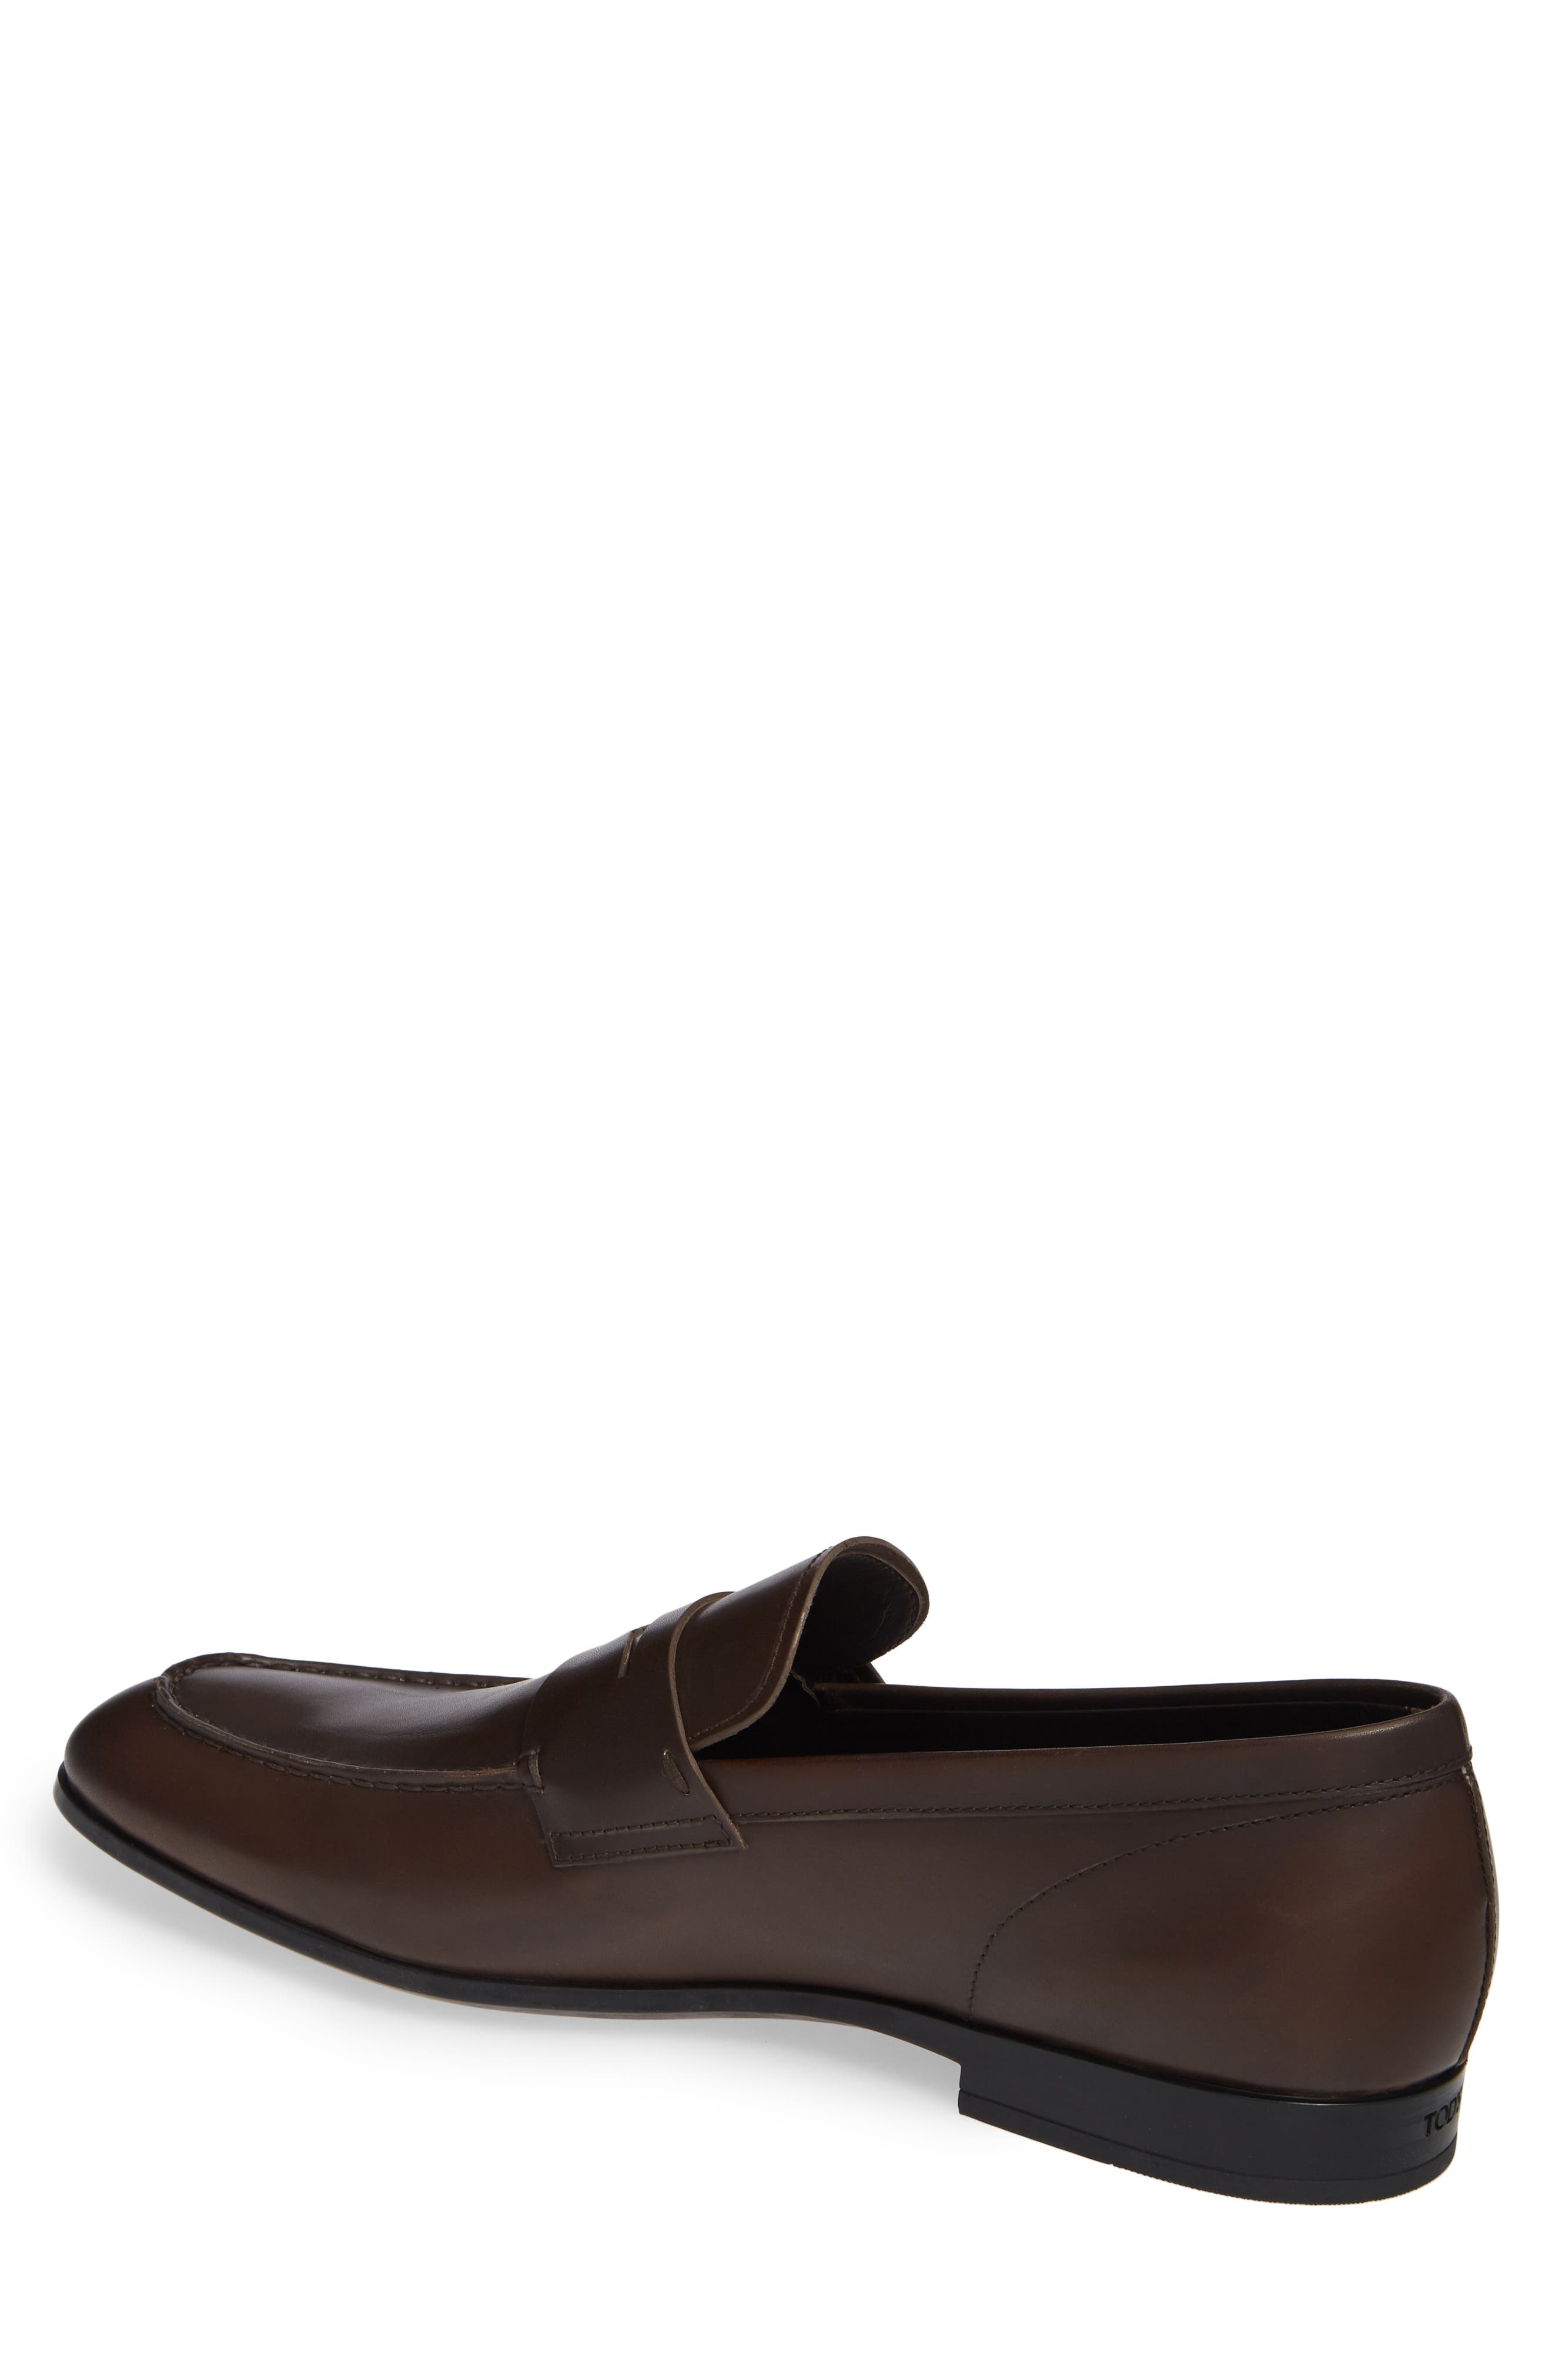 TOD'S, Mocassino Penny Loafer, Alternate thumbnail 2, color, DARK BROWN